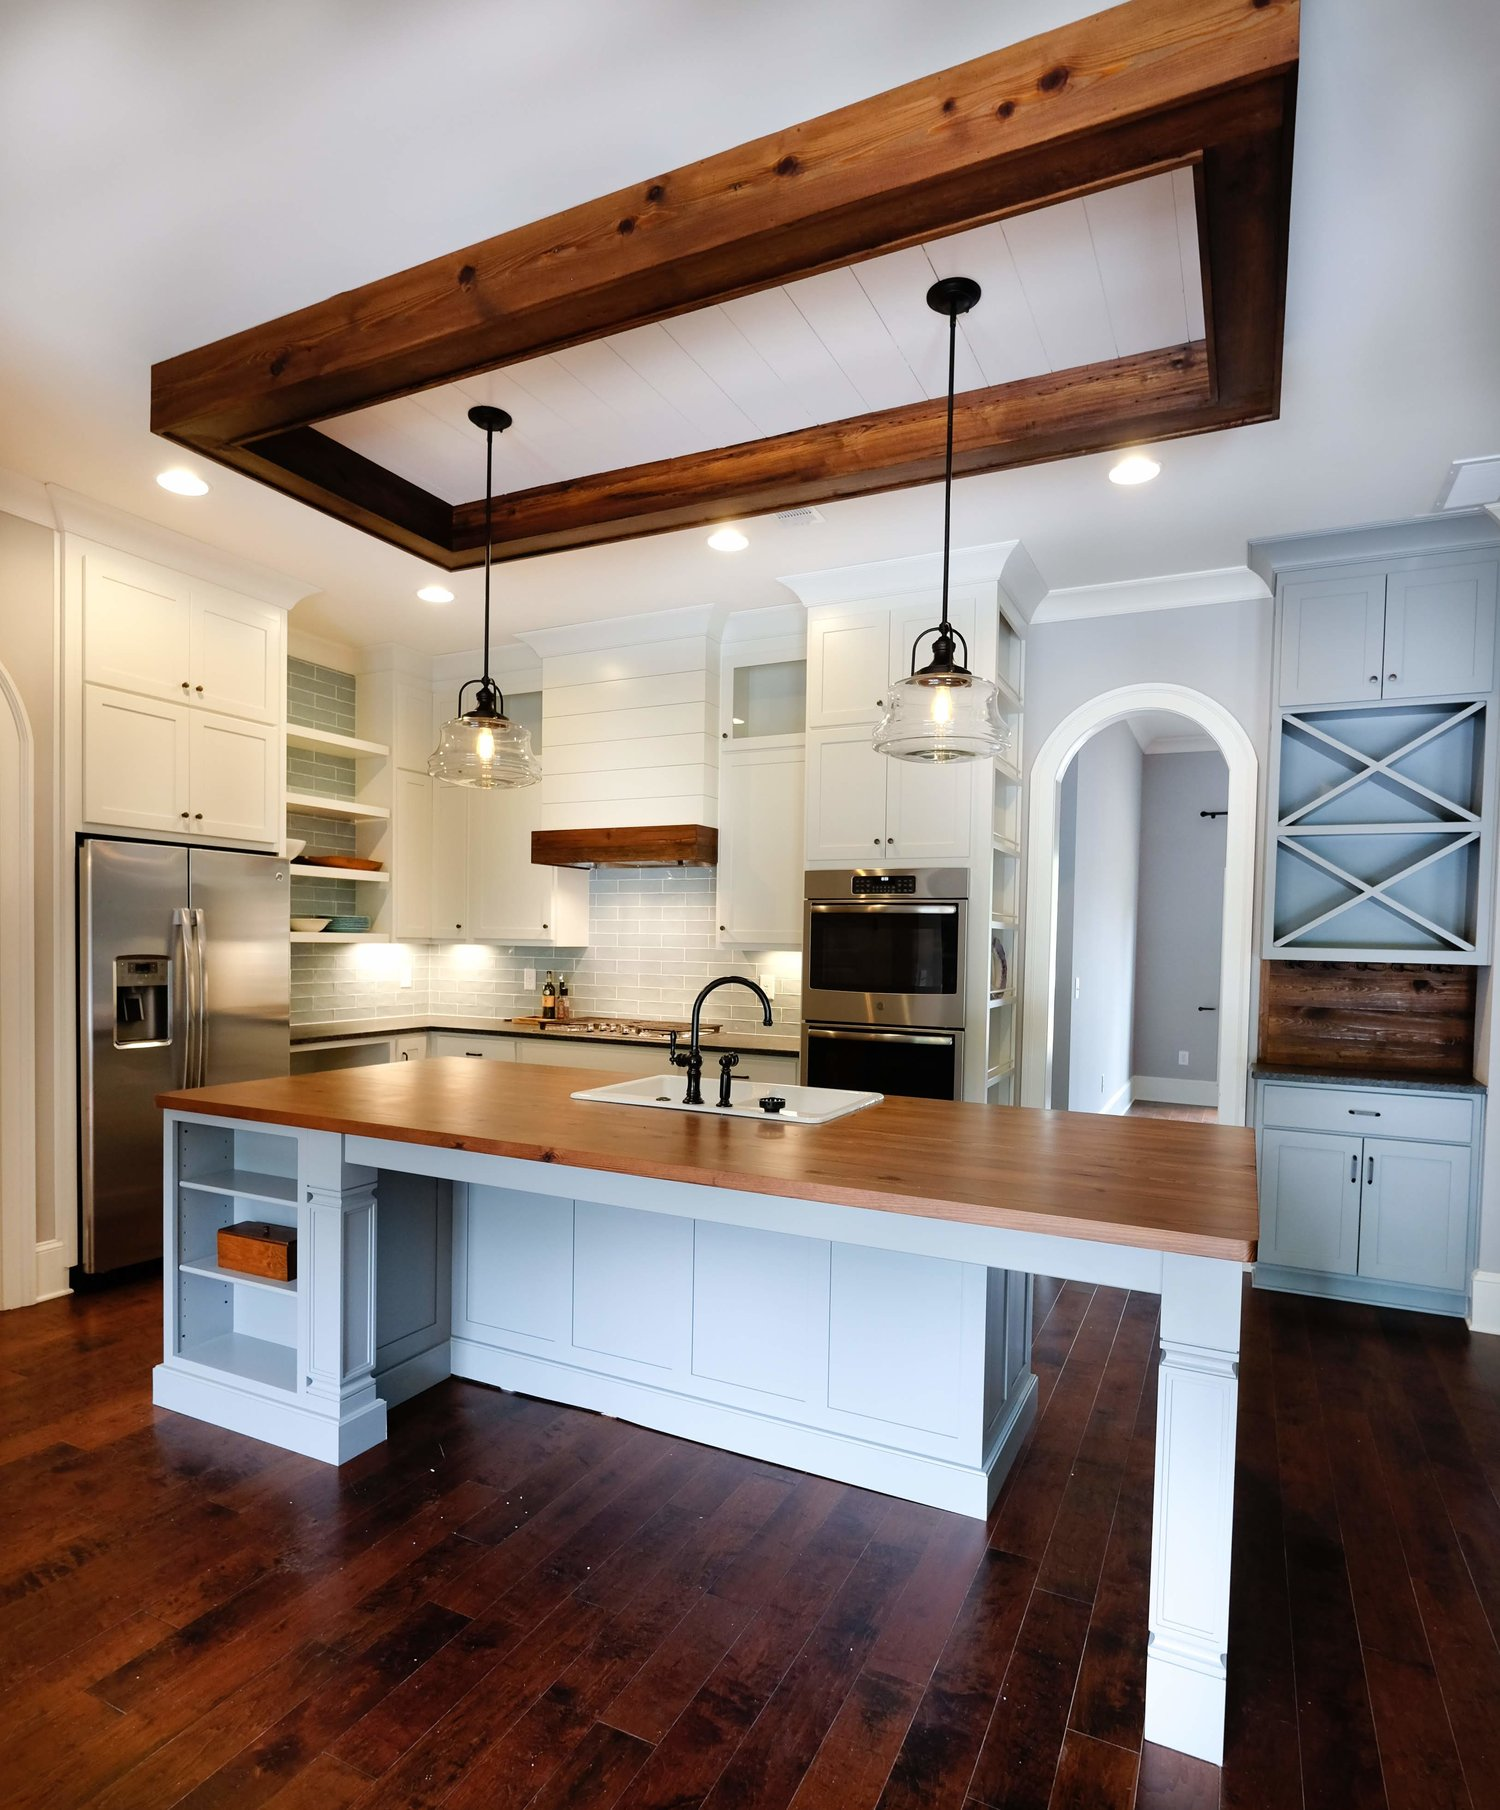 9 Ways To Add Wood Countertops Your